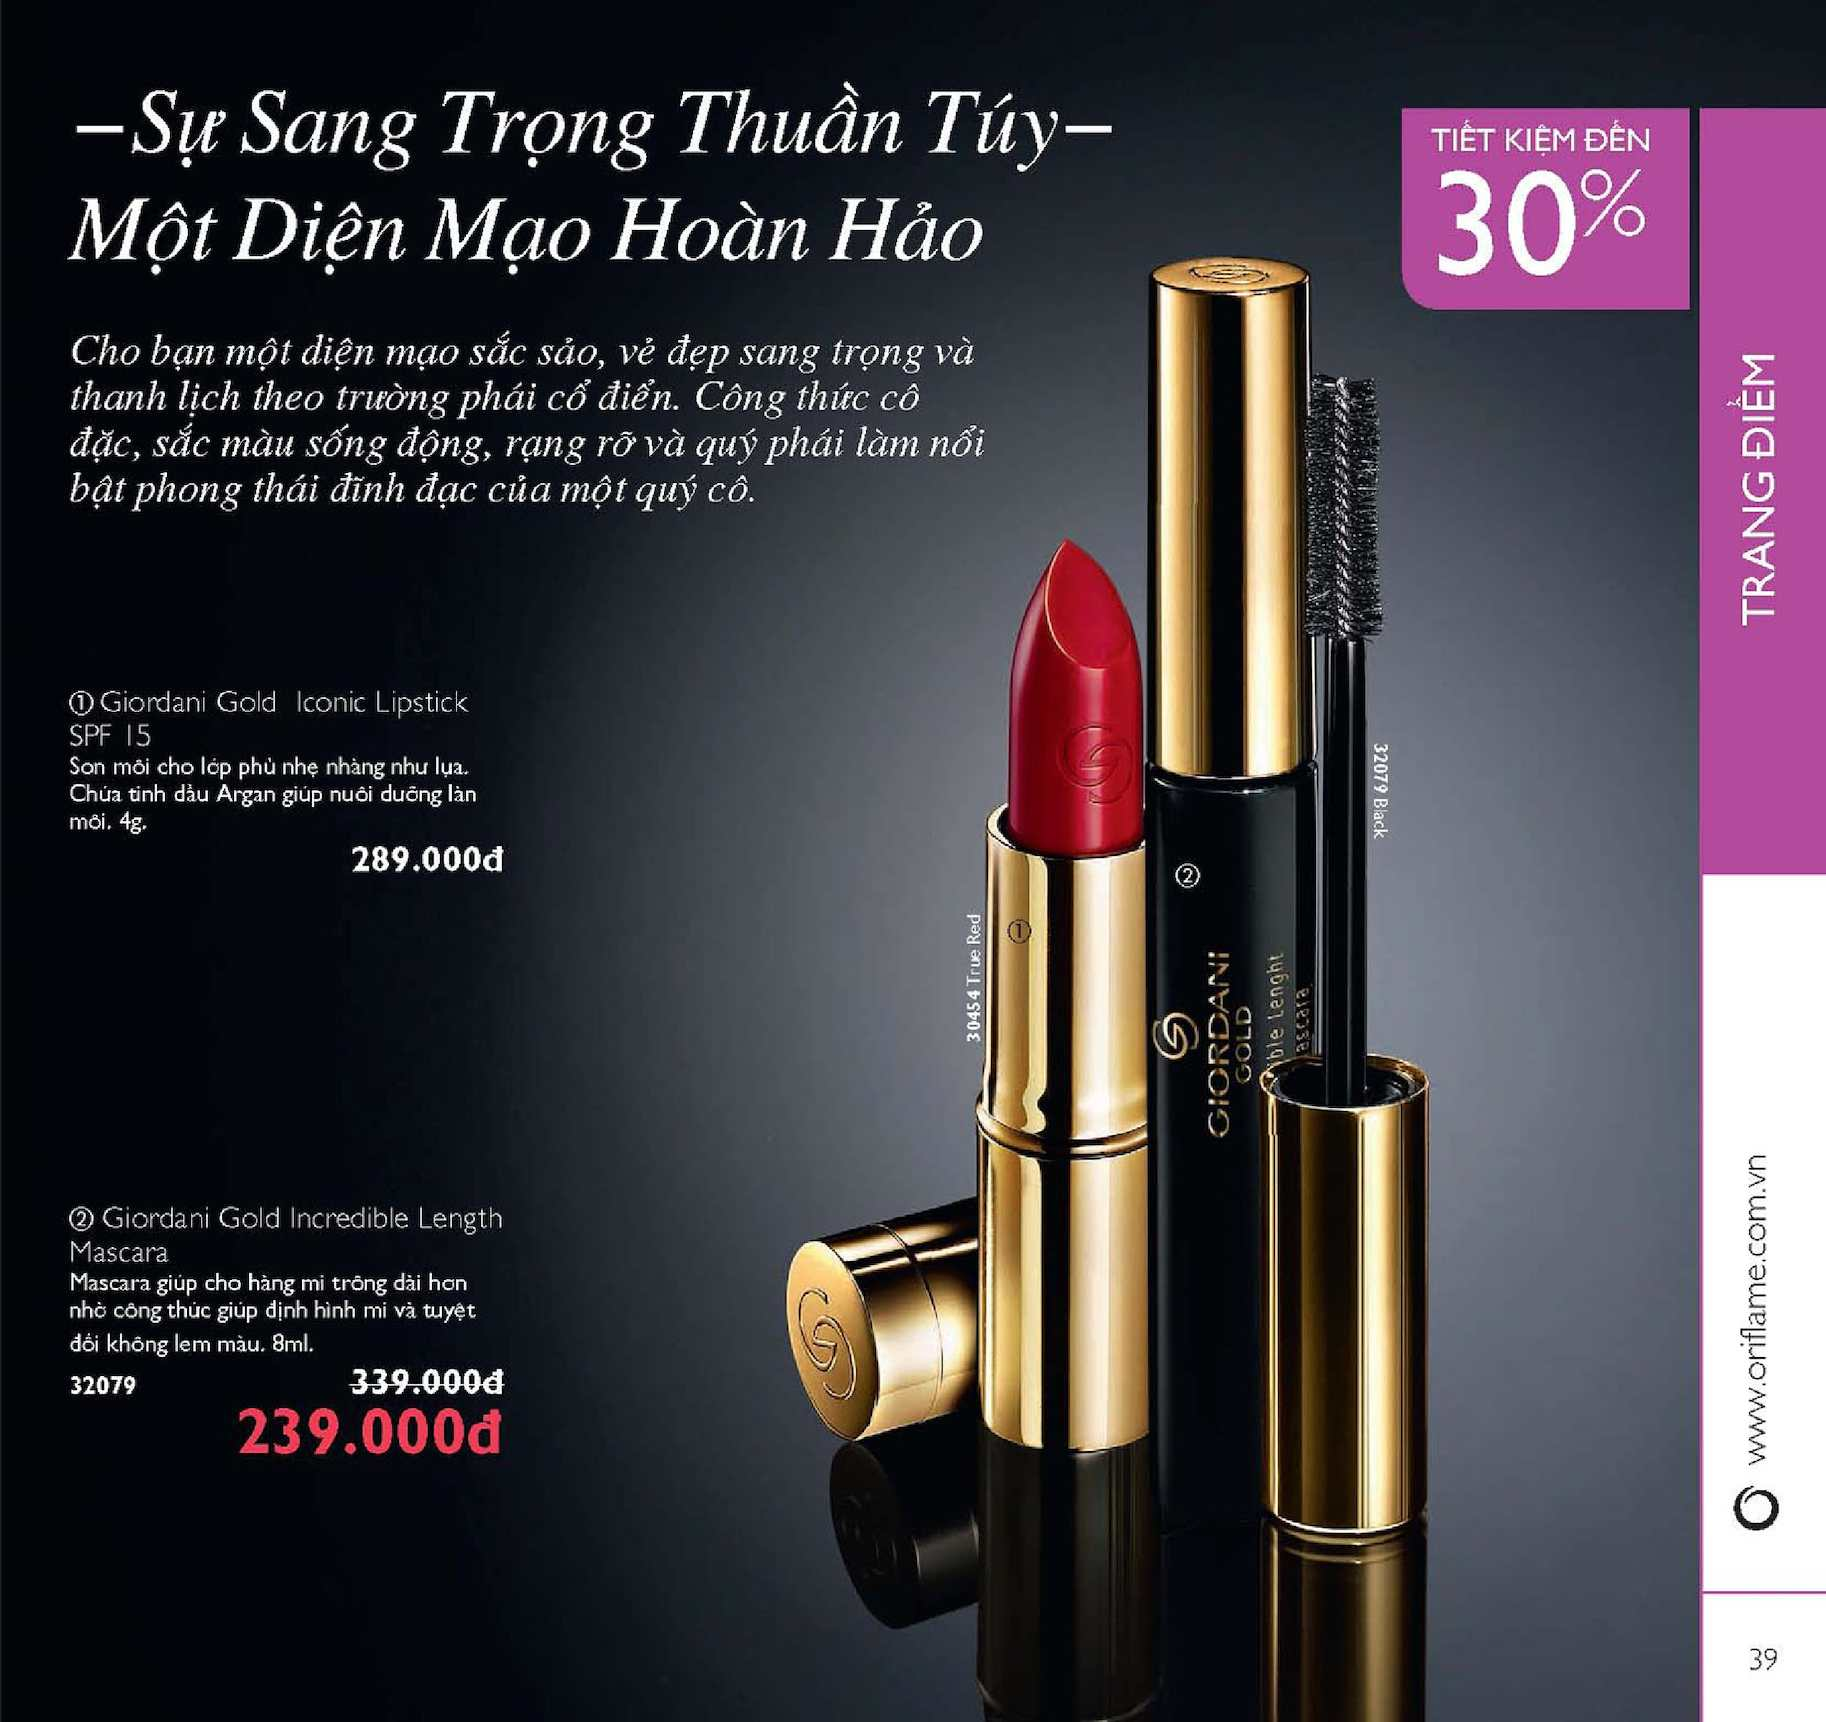 Catalogue My Pham Oriflame 5 2016 Calameo Downloader Giordani Gold Iconic Lipstick Spf 15 Lavender Lustre Page 39